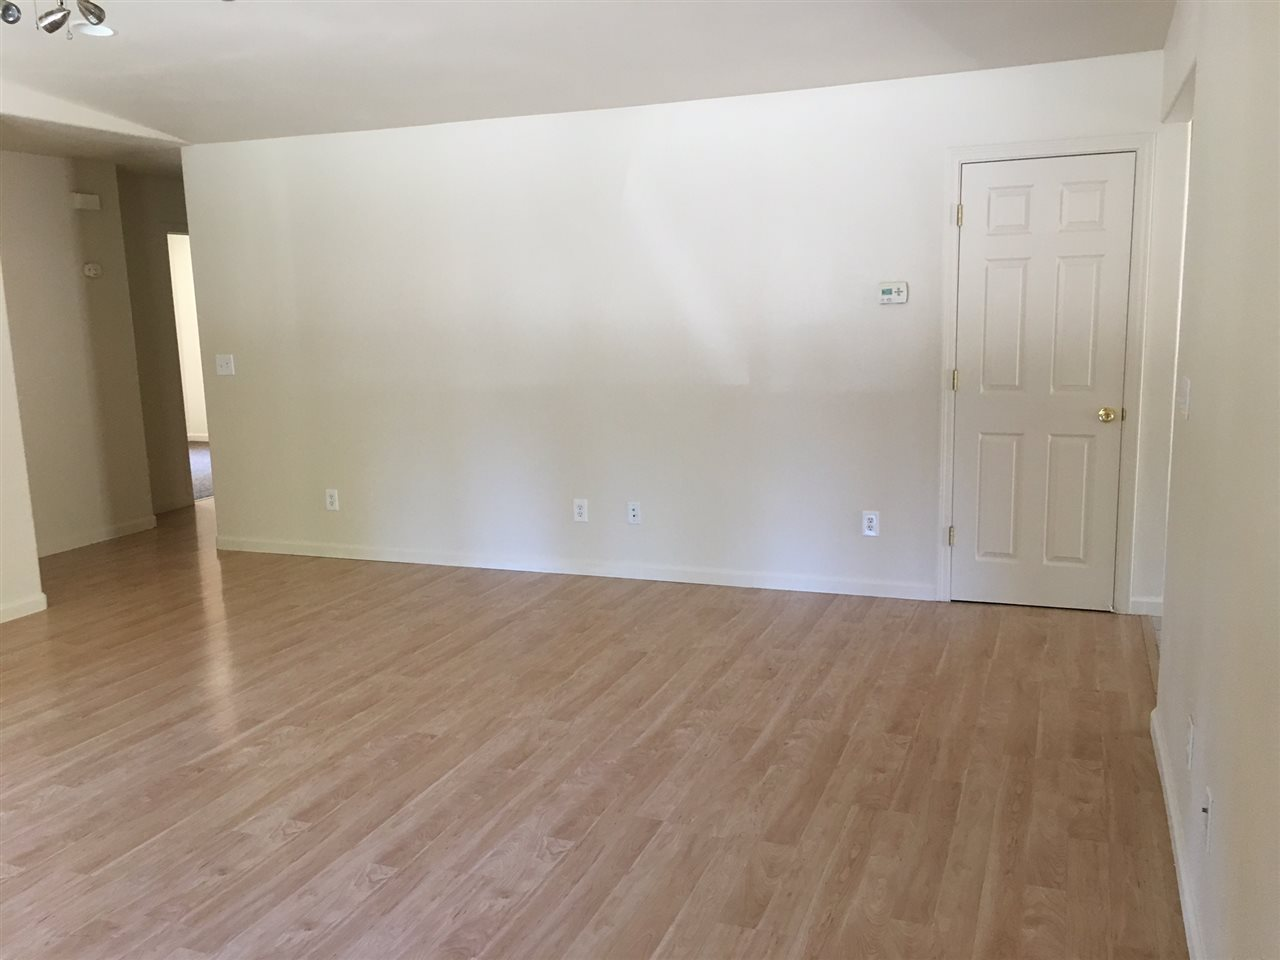 Additional photo for property listing at 720 Yeargin Drive 720 Yeargin Drive Portola, California 96122 Estados Unidos